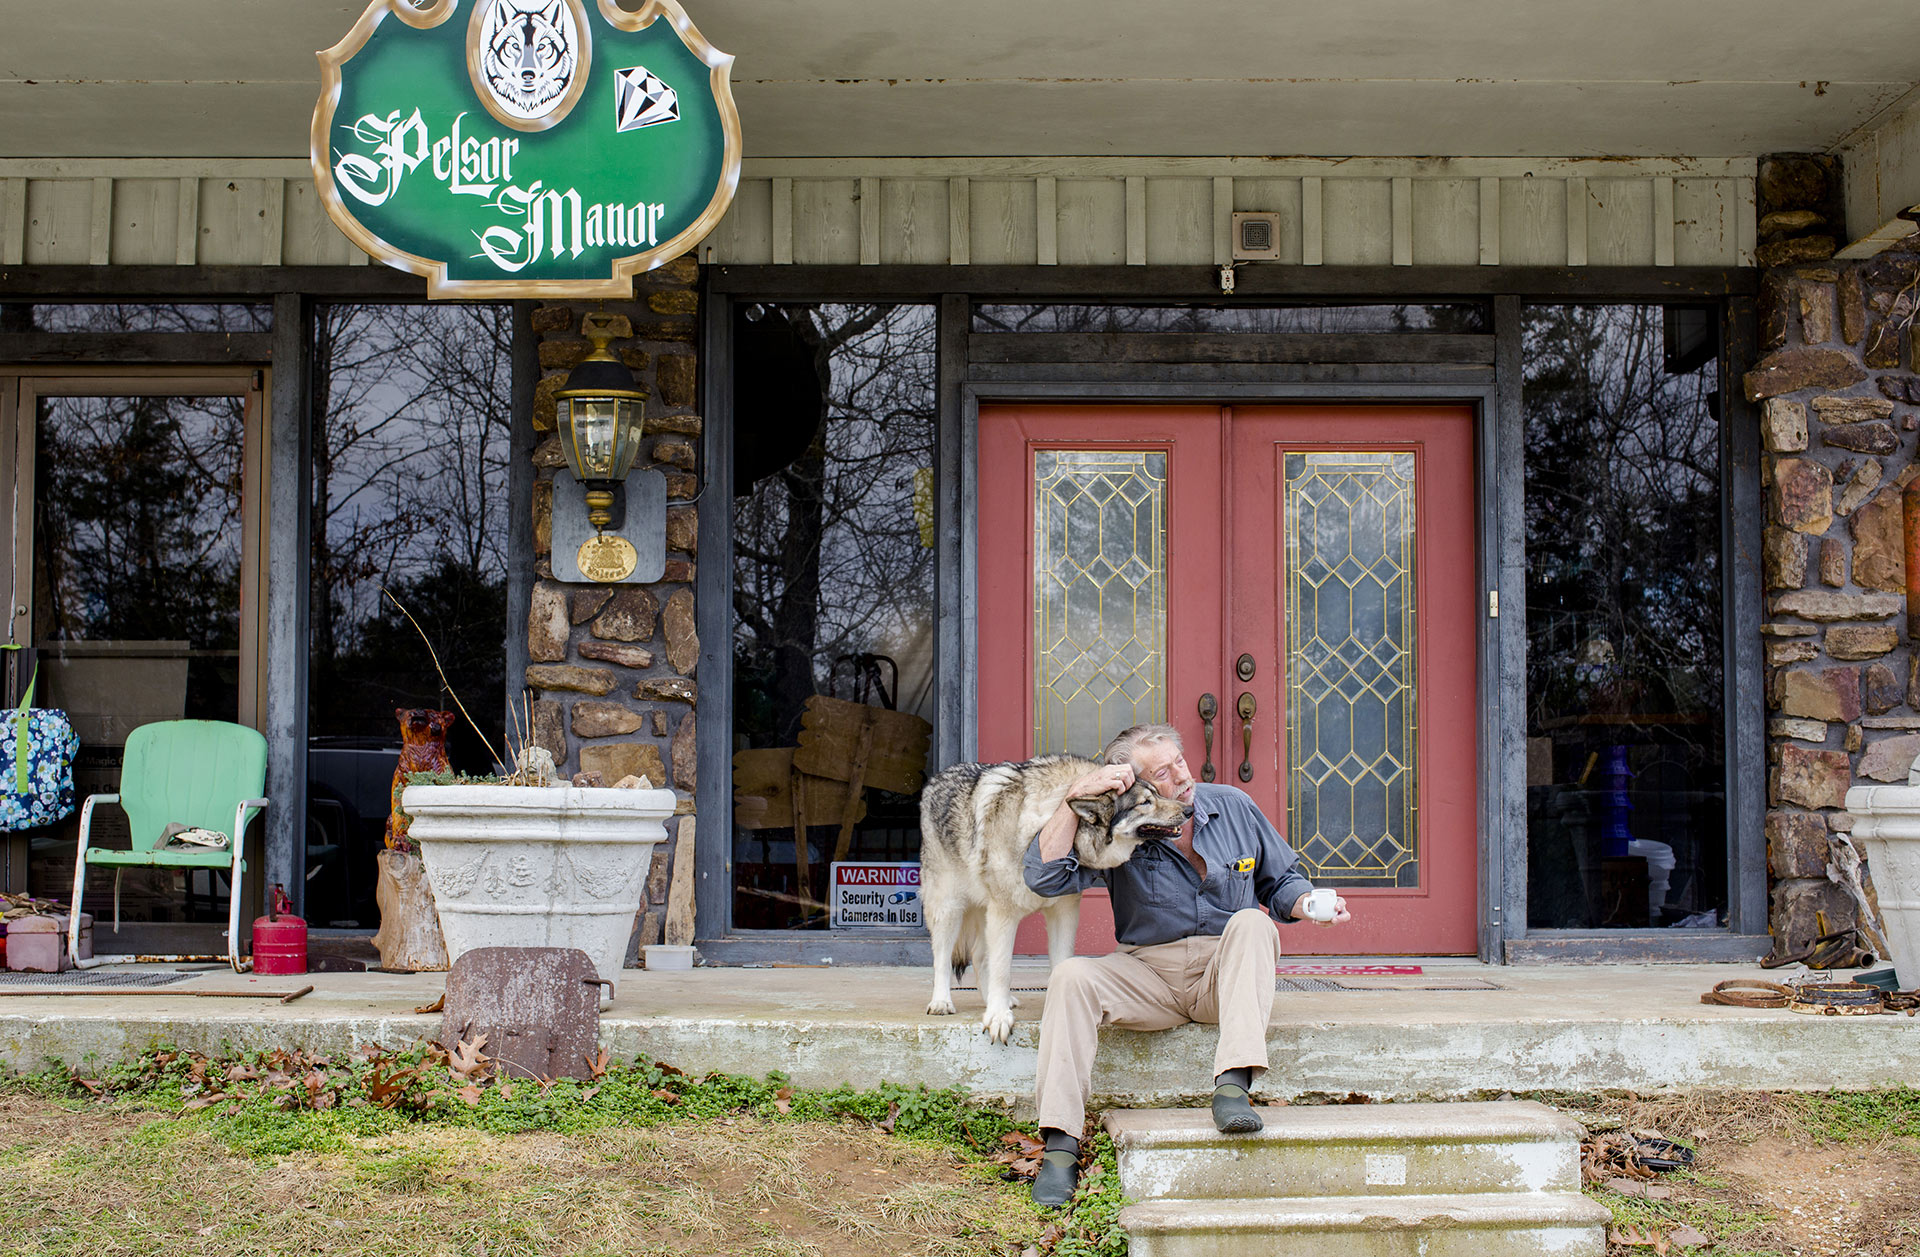 Bud Pelsor currently lives in the old ski lodge at Marble Falls with his dog Dia.